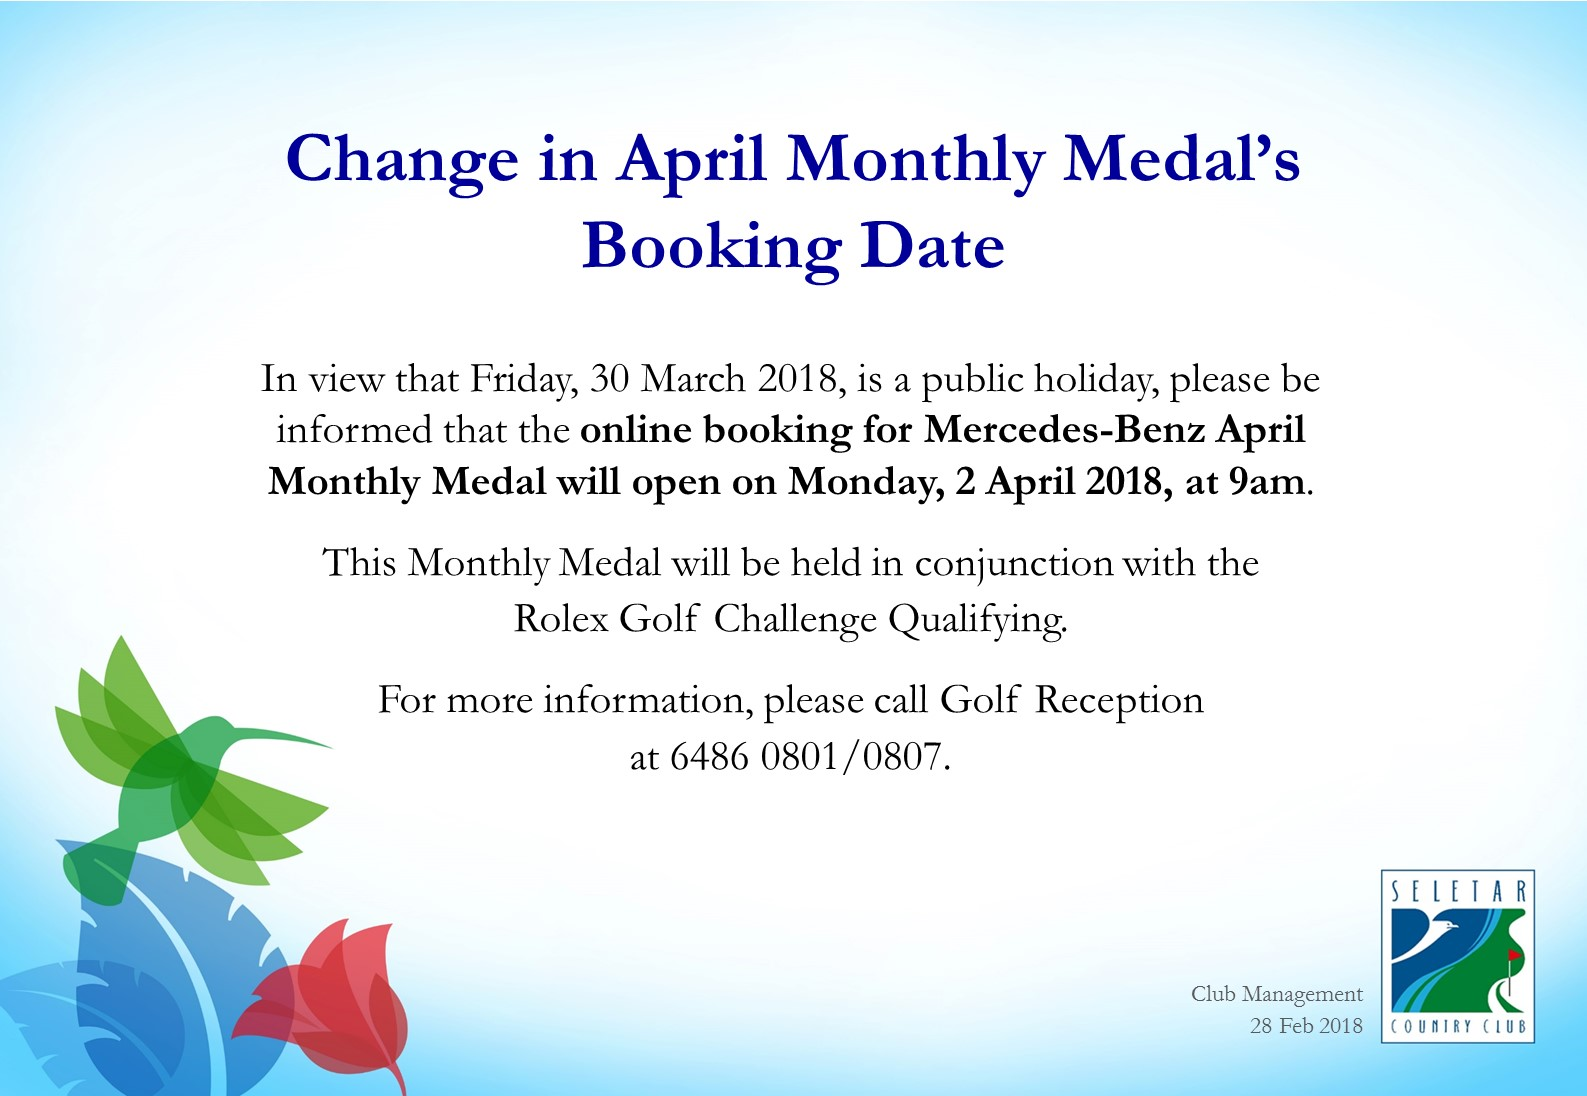 Change in April Monthly Medal's Booking Date